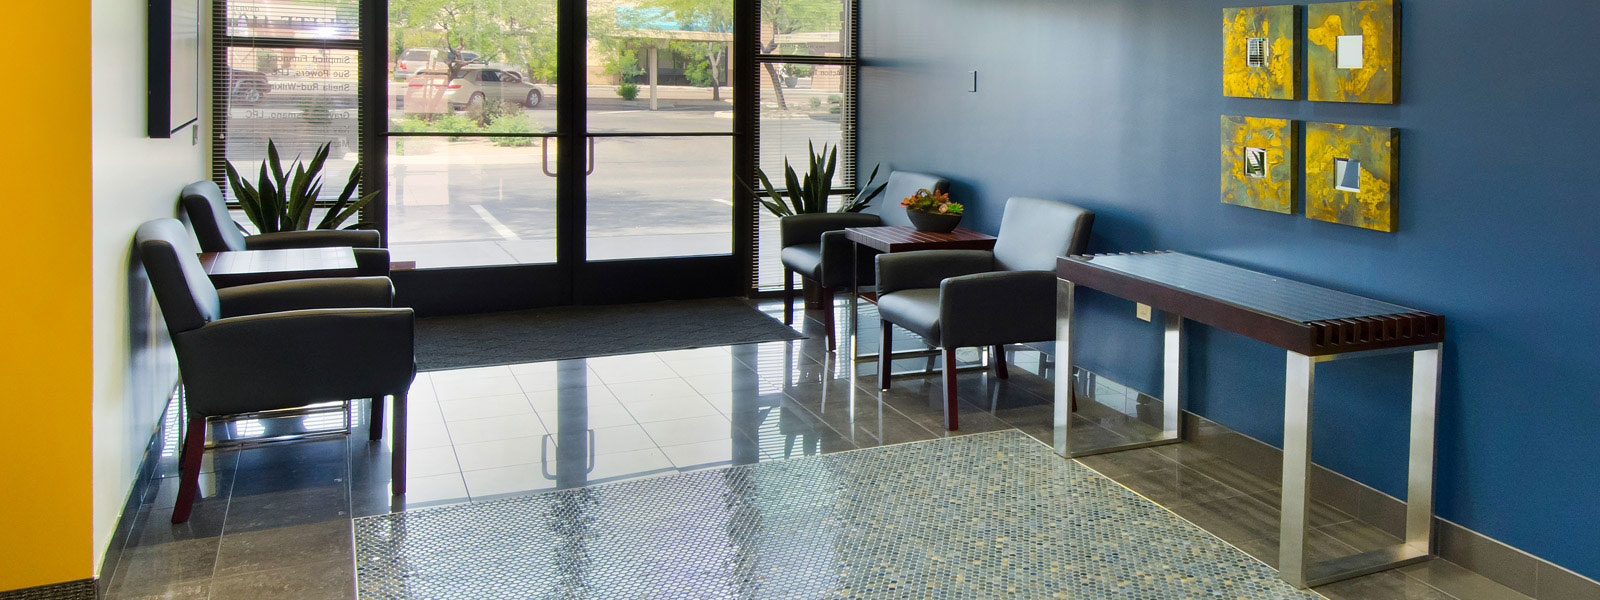 Scottsdale-Executive-Office-Suites-Bright-Entryway